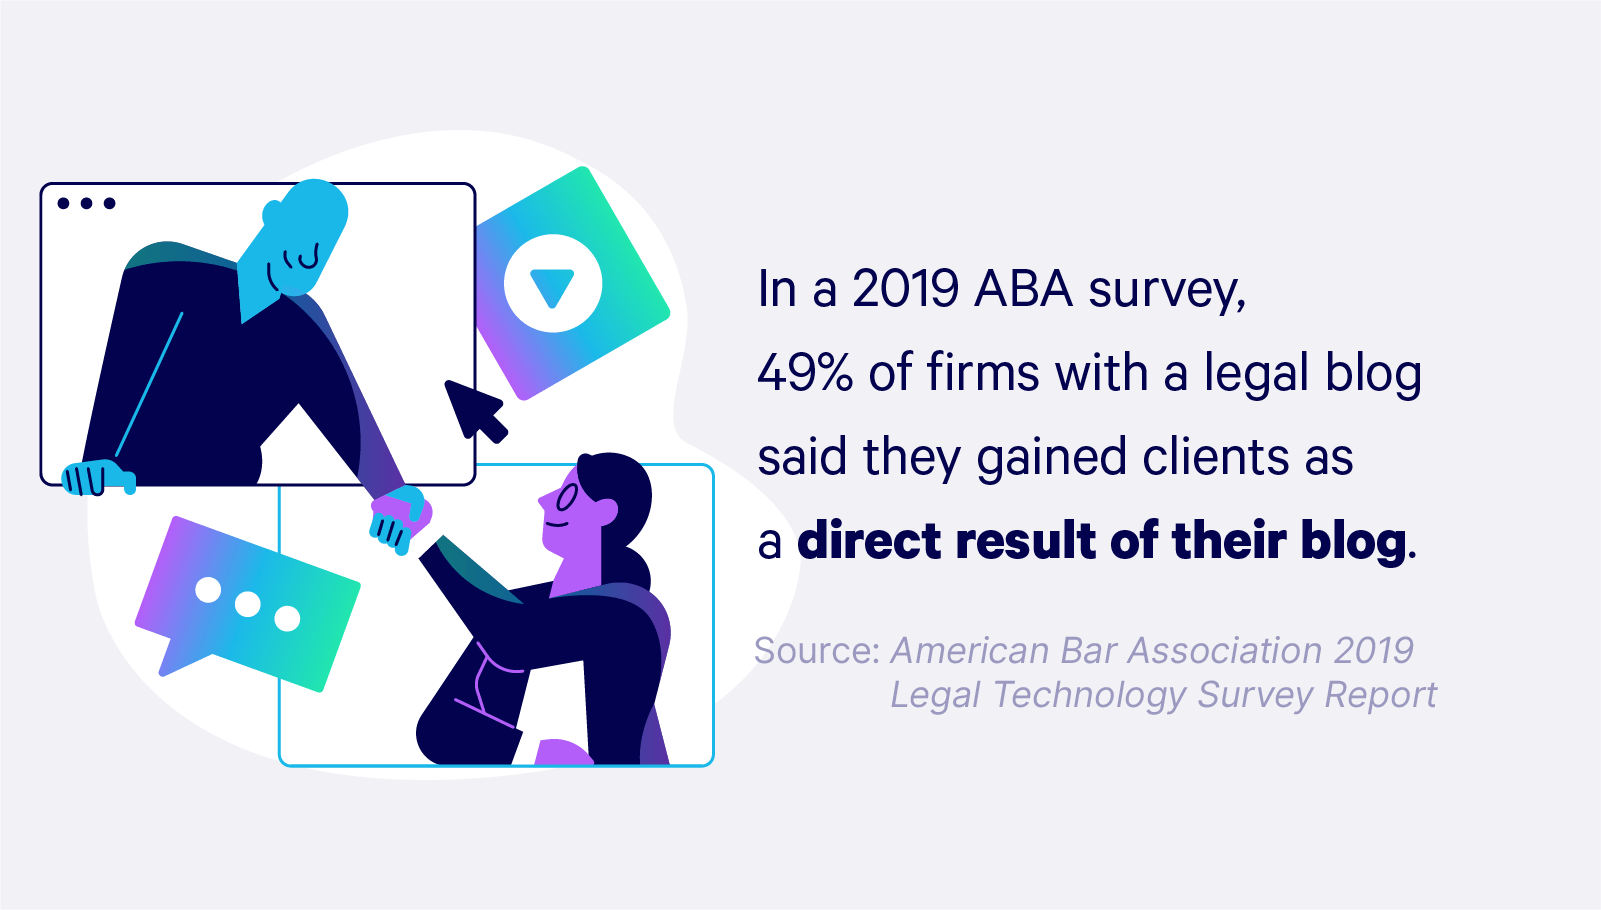 Illustrated graphic with copy: In a 2019 ABA survey, 49% of firms with a legal blog said they gained clients as a direct result of their blog.